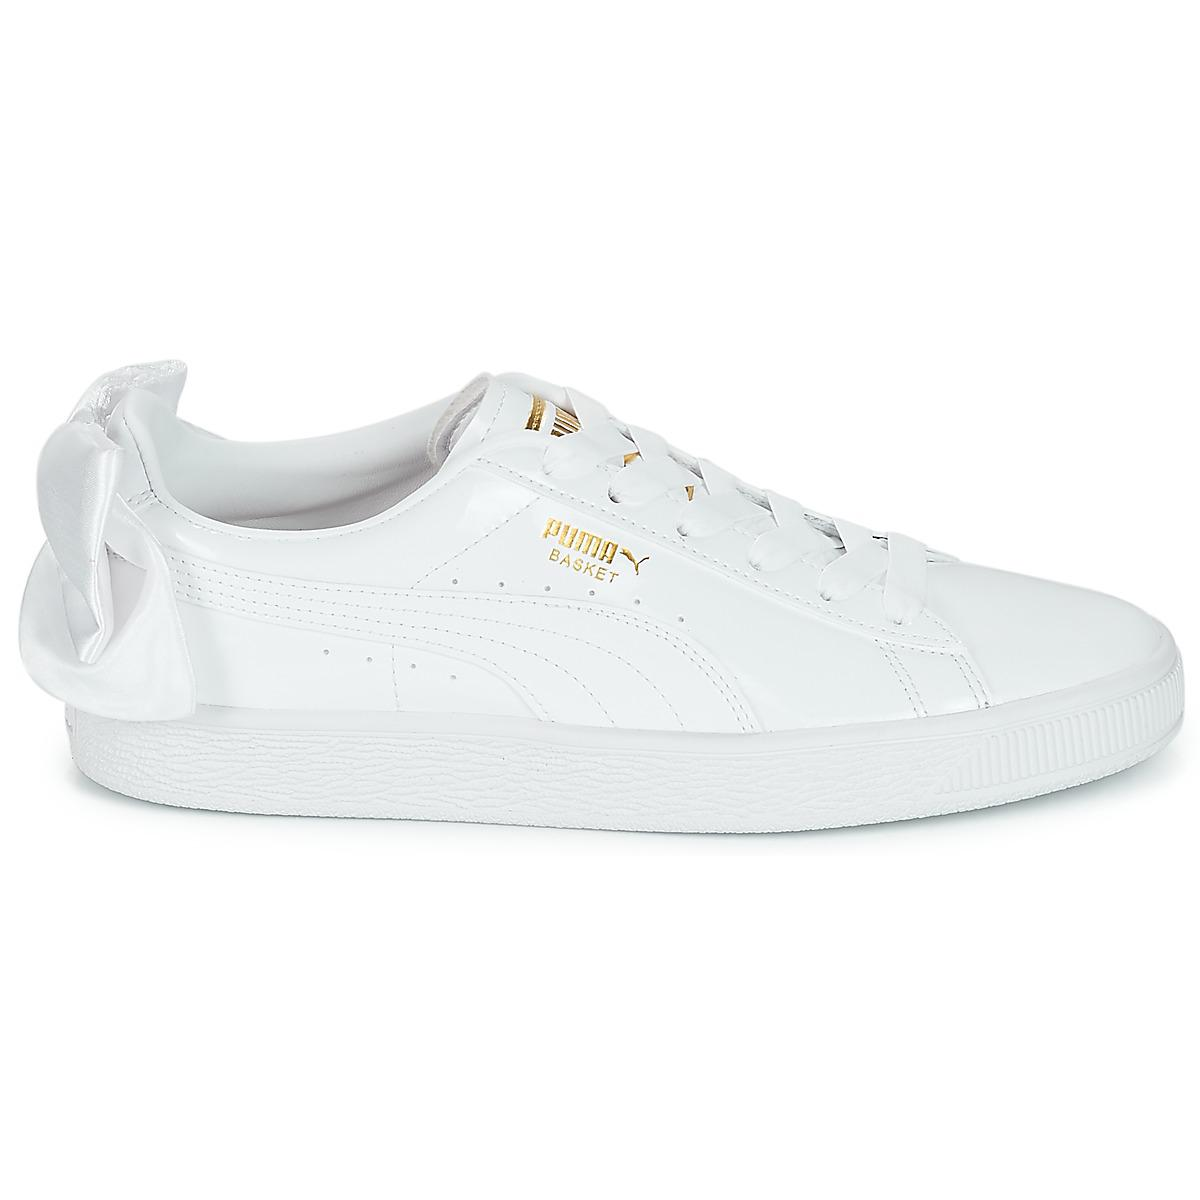 f0d27579567 PUMA Wn Suede Bow Patent.white Women s Shoes (trainers) In White in ...